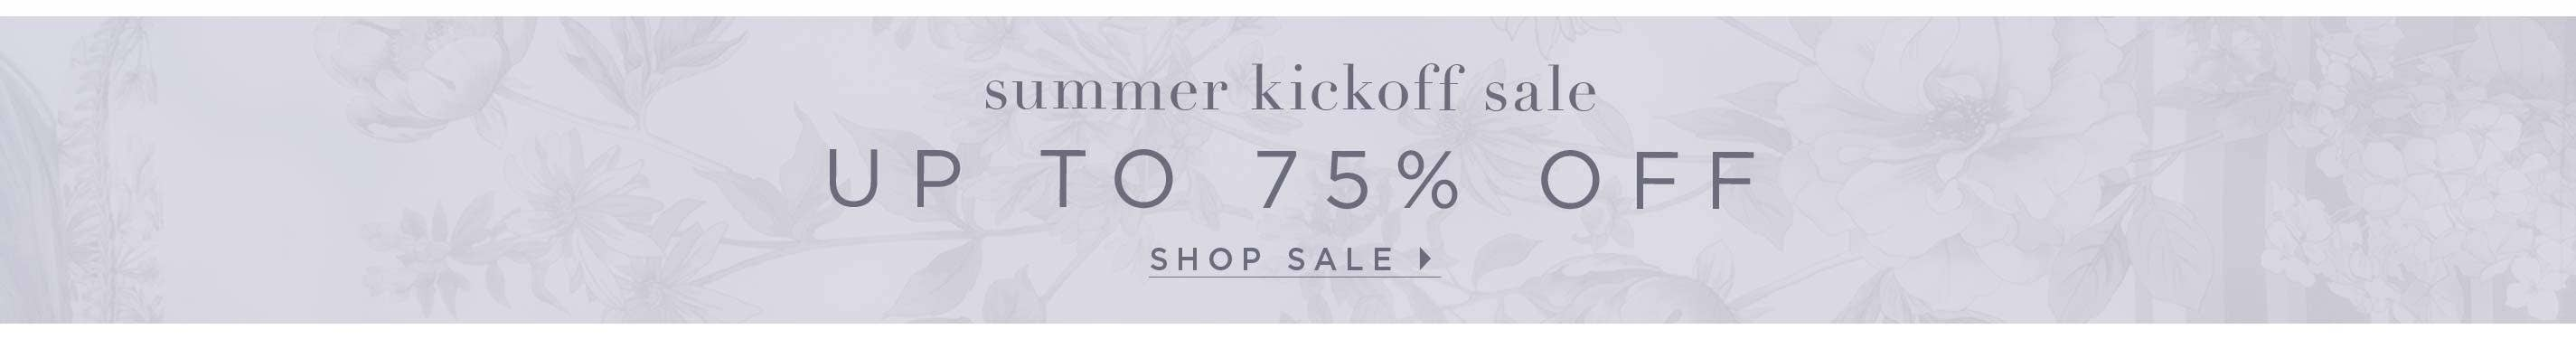 Summer Kickoff Sale - Up to 75% off - Shop Sale